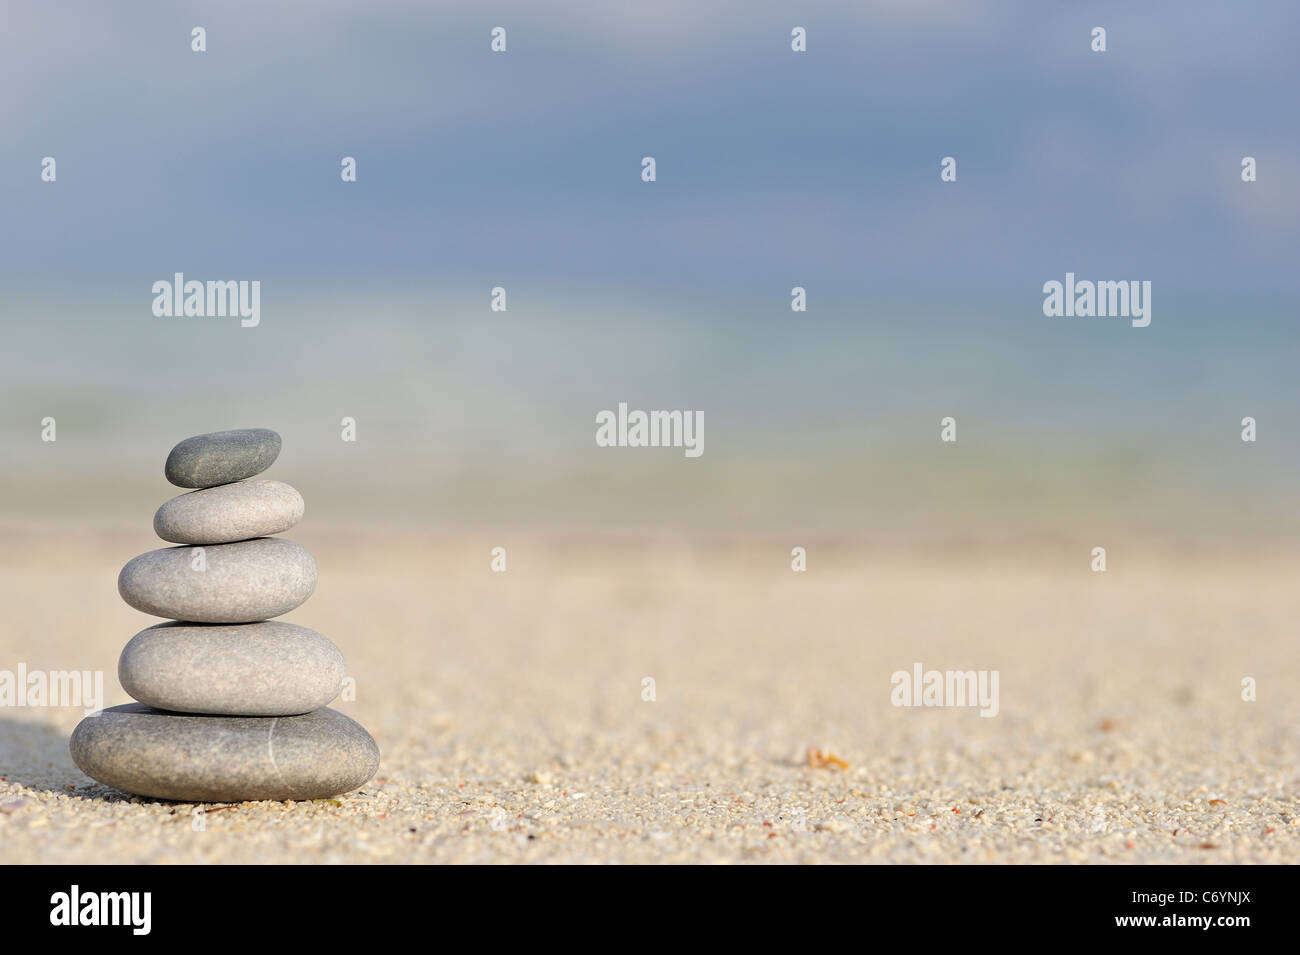 Stack of pebbles on beach, by a tropical sea - Stock Image